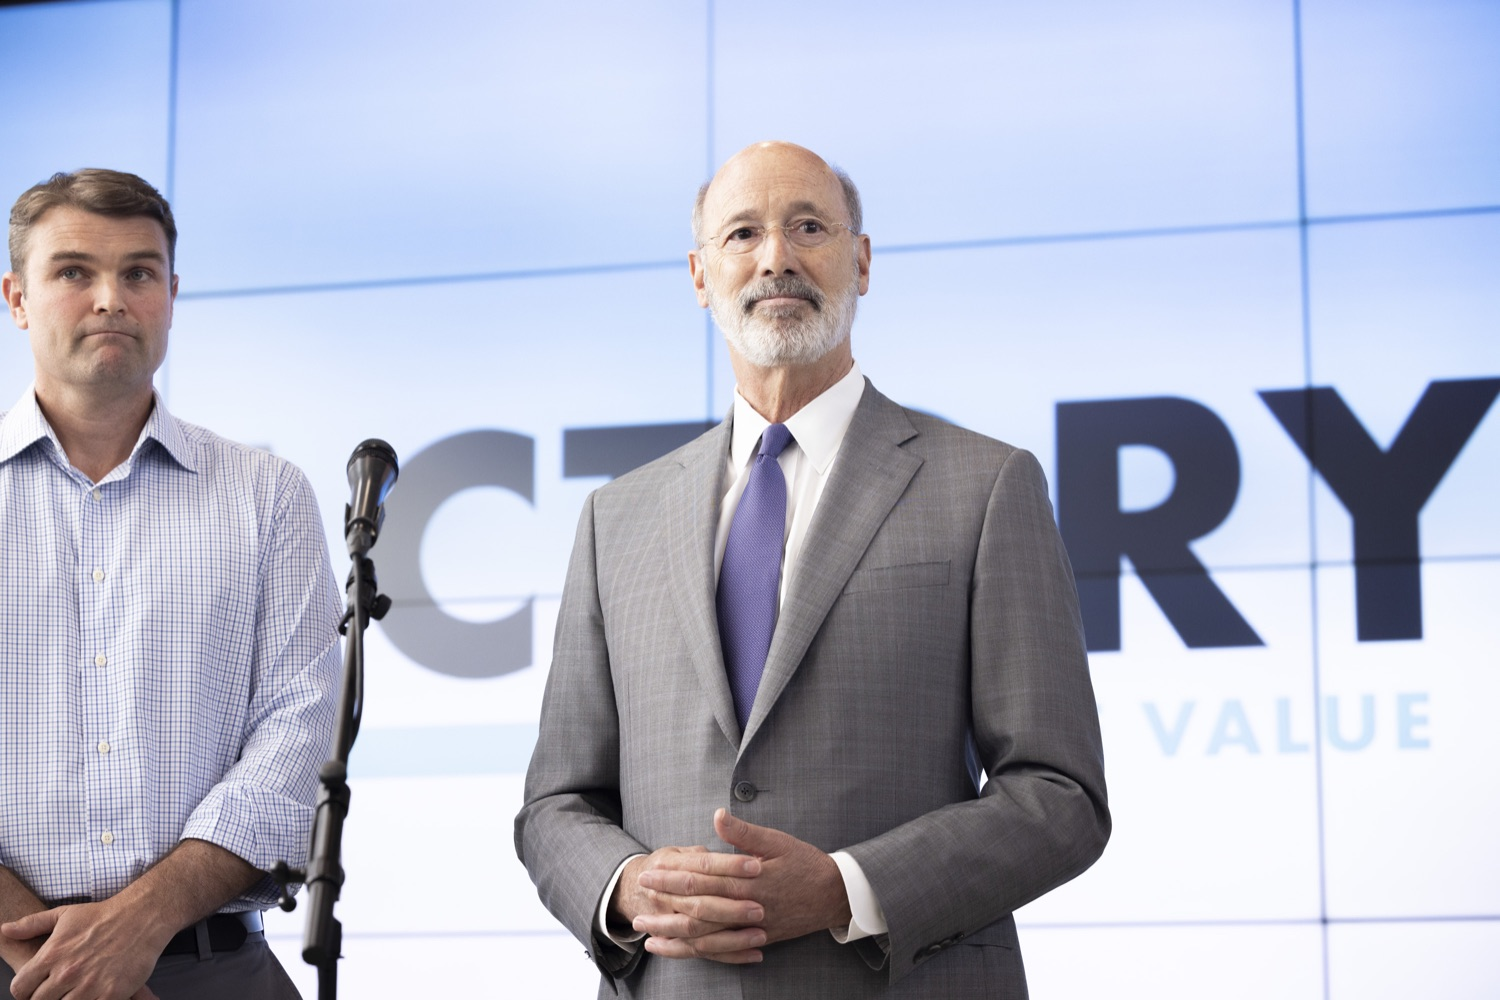 """<a href=""""https://filesource.wostreaming.net/commonwealthofpa/photo/18941_gov_economicDevelopment_dz_005.jpg"""" target=""""_blank"""">⇣Download Photo<br></a>Pennsylvania Governor Tom Wolf and Keith Caldwell, Partner  Factory LLC speaking with the press.  Governor Tom Wolf today visited Factory LLC in Bethlehem to tour the facility and highlight the importance of investing in Pennsylvanias start-up companies. During the visit, he met with companies affiliated with Factory, including Stuffed Puffs®, which received a $1 million funding proposal from the commonwealth in 2019 to expand its manufacturing operations and create jobs, Mikeys®, Pipcorn®, Honey Stinger®, and ROAR® Organic. Bethlehem, PA  July 19, 2021"""